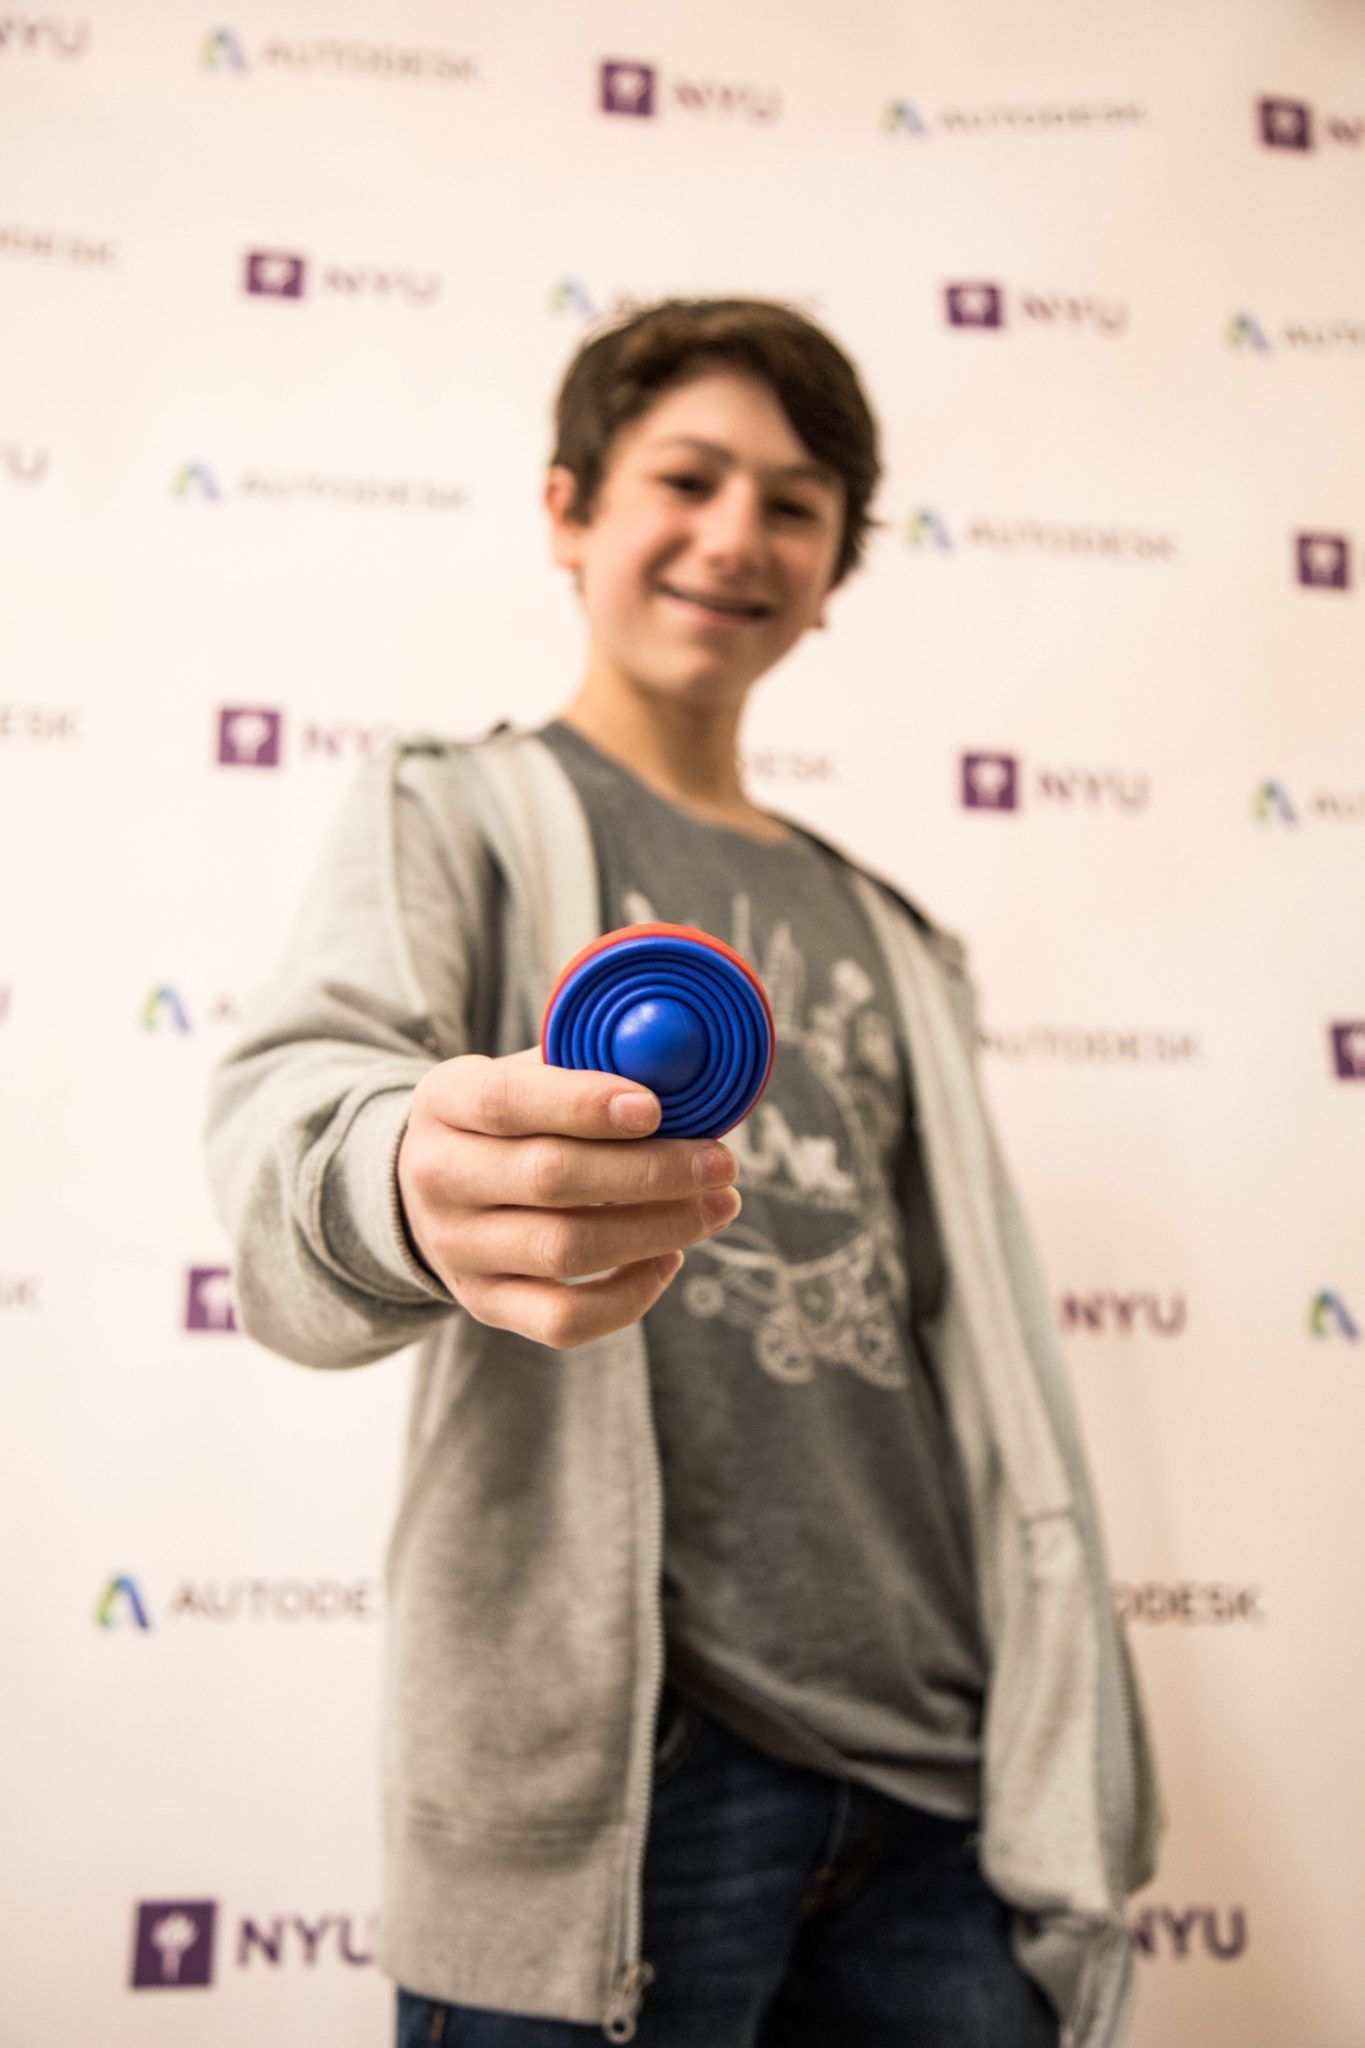 A Celebration Of Kid Inventors With Nyu And Autodesk